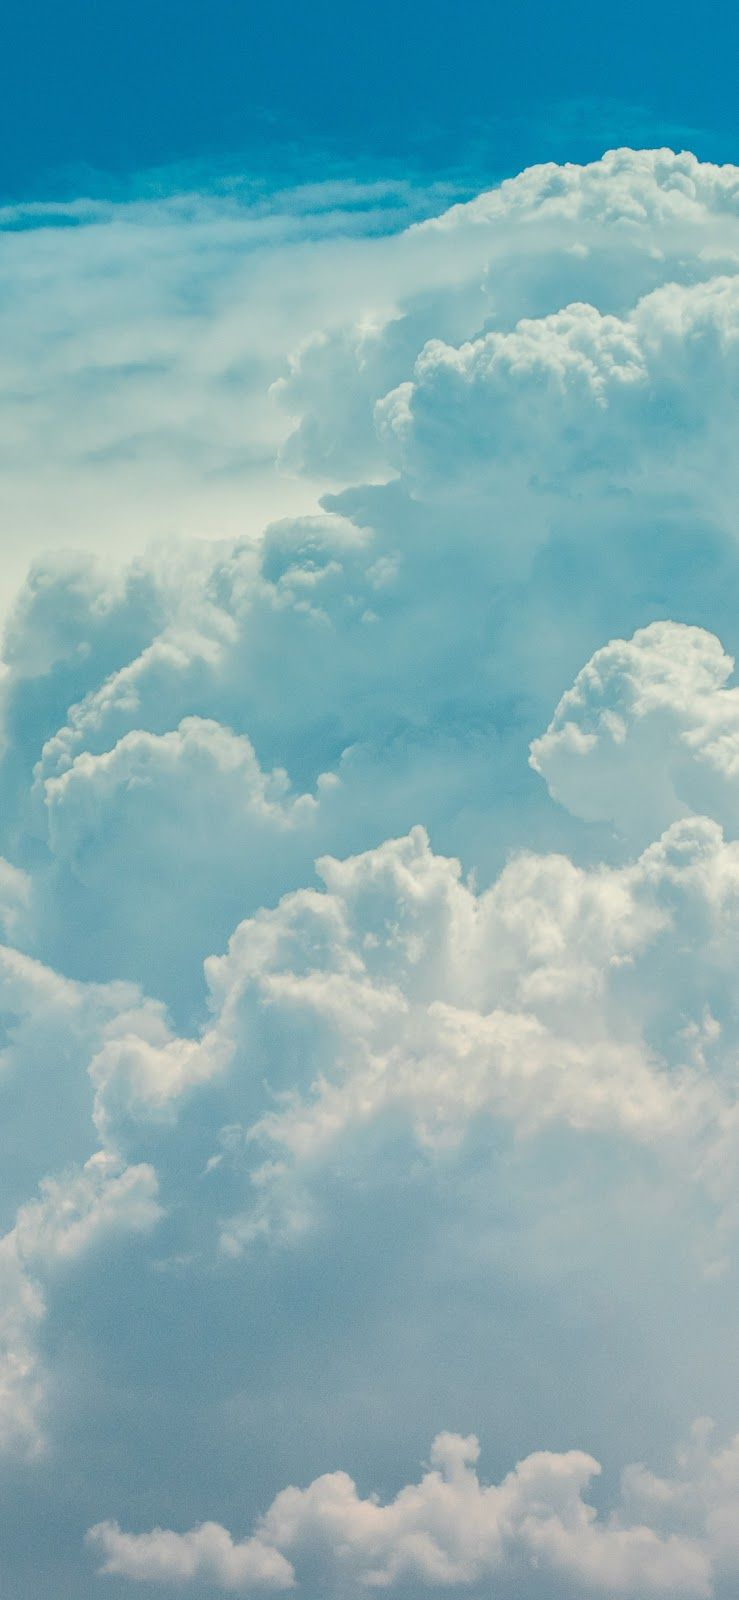 Cloudy sky iPhone X wallpaper iphone android background ...